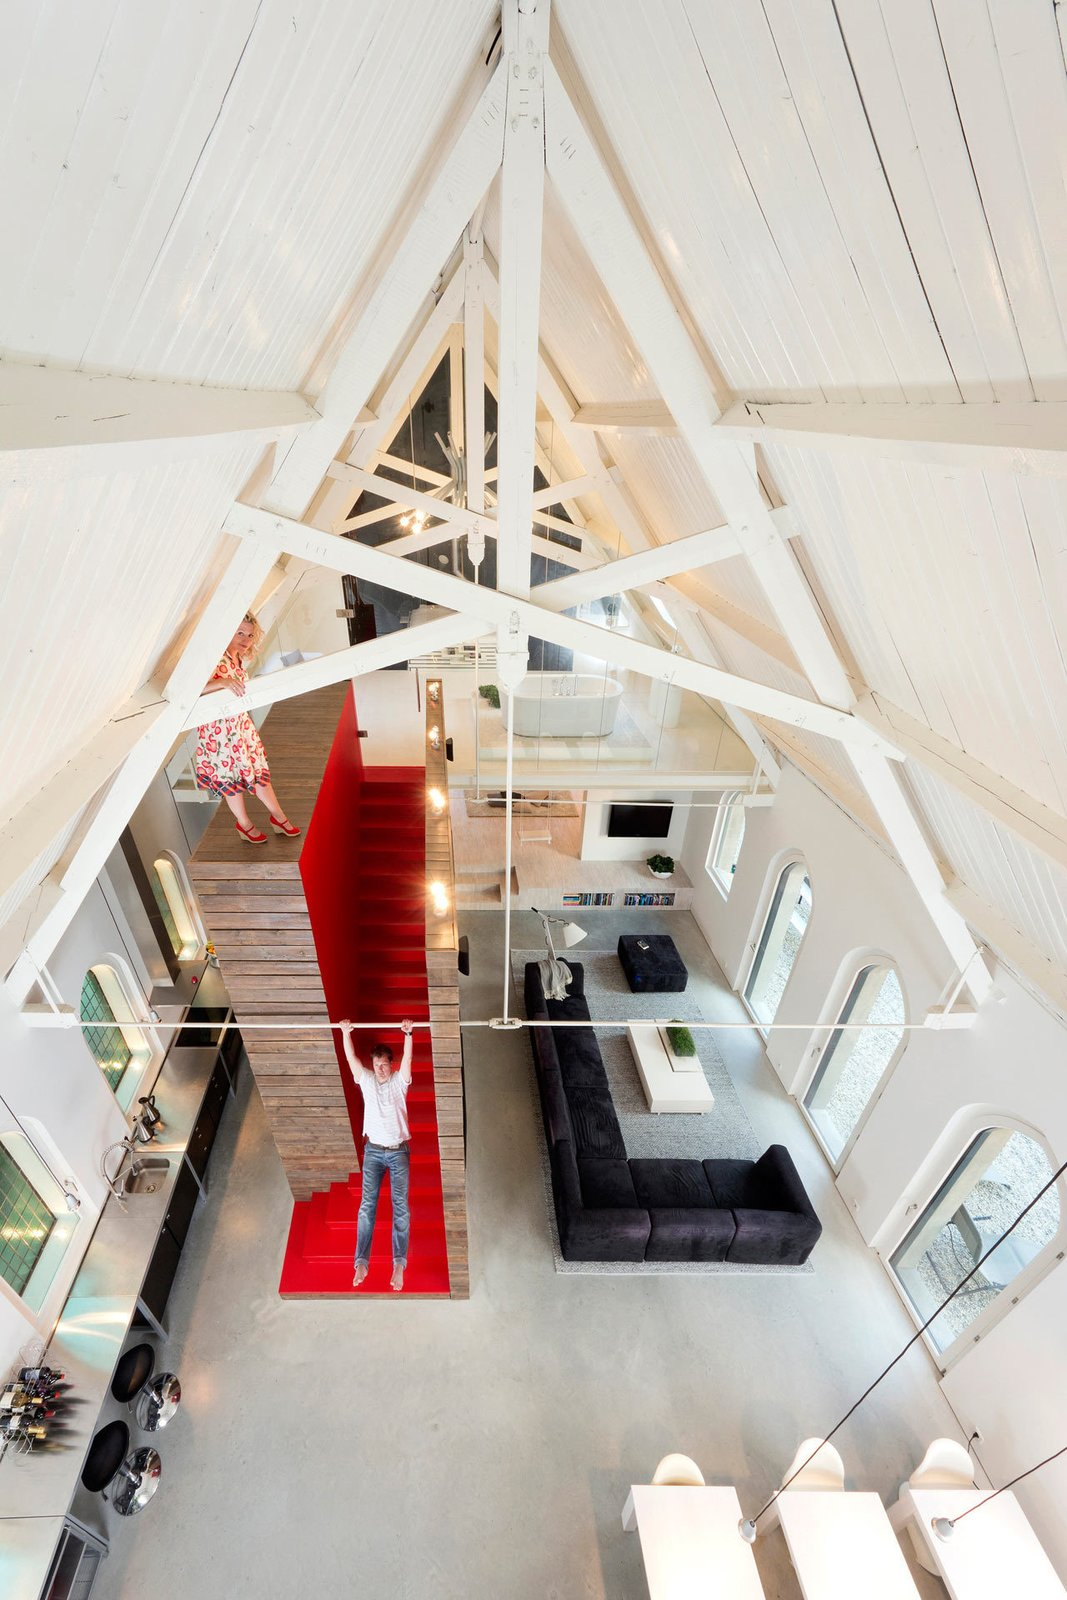 Located in Harrlo, The Netherlands, this home was once the Dutch Reformed Evangelism Building before being transformed by Leijh Kappelhoff Seckel van den Dobbelsteen architecten. The new design includes a bedroom and bathroom loft with modern features and furnishings paired with many of the original details, including the wood roof and the arched stained glass windows.  Photo 2 of 10 in Traditional Churches Become Modern Homes